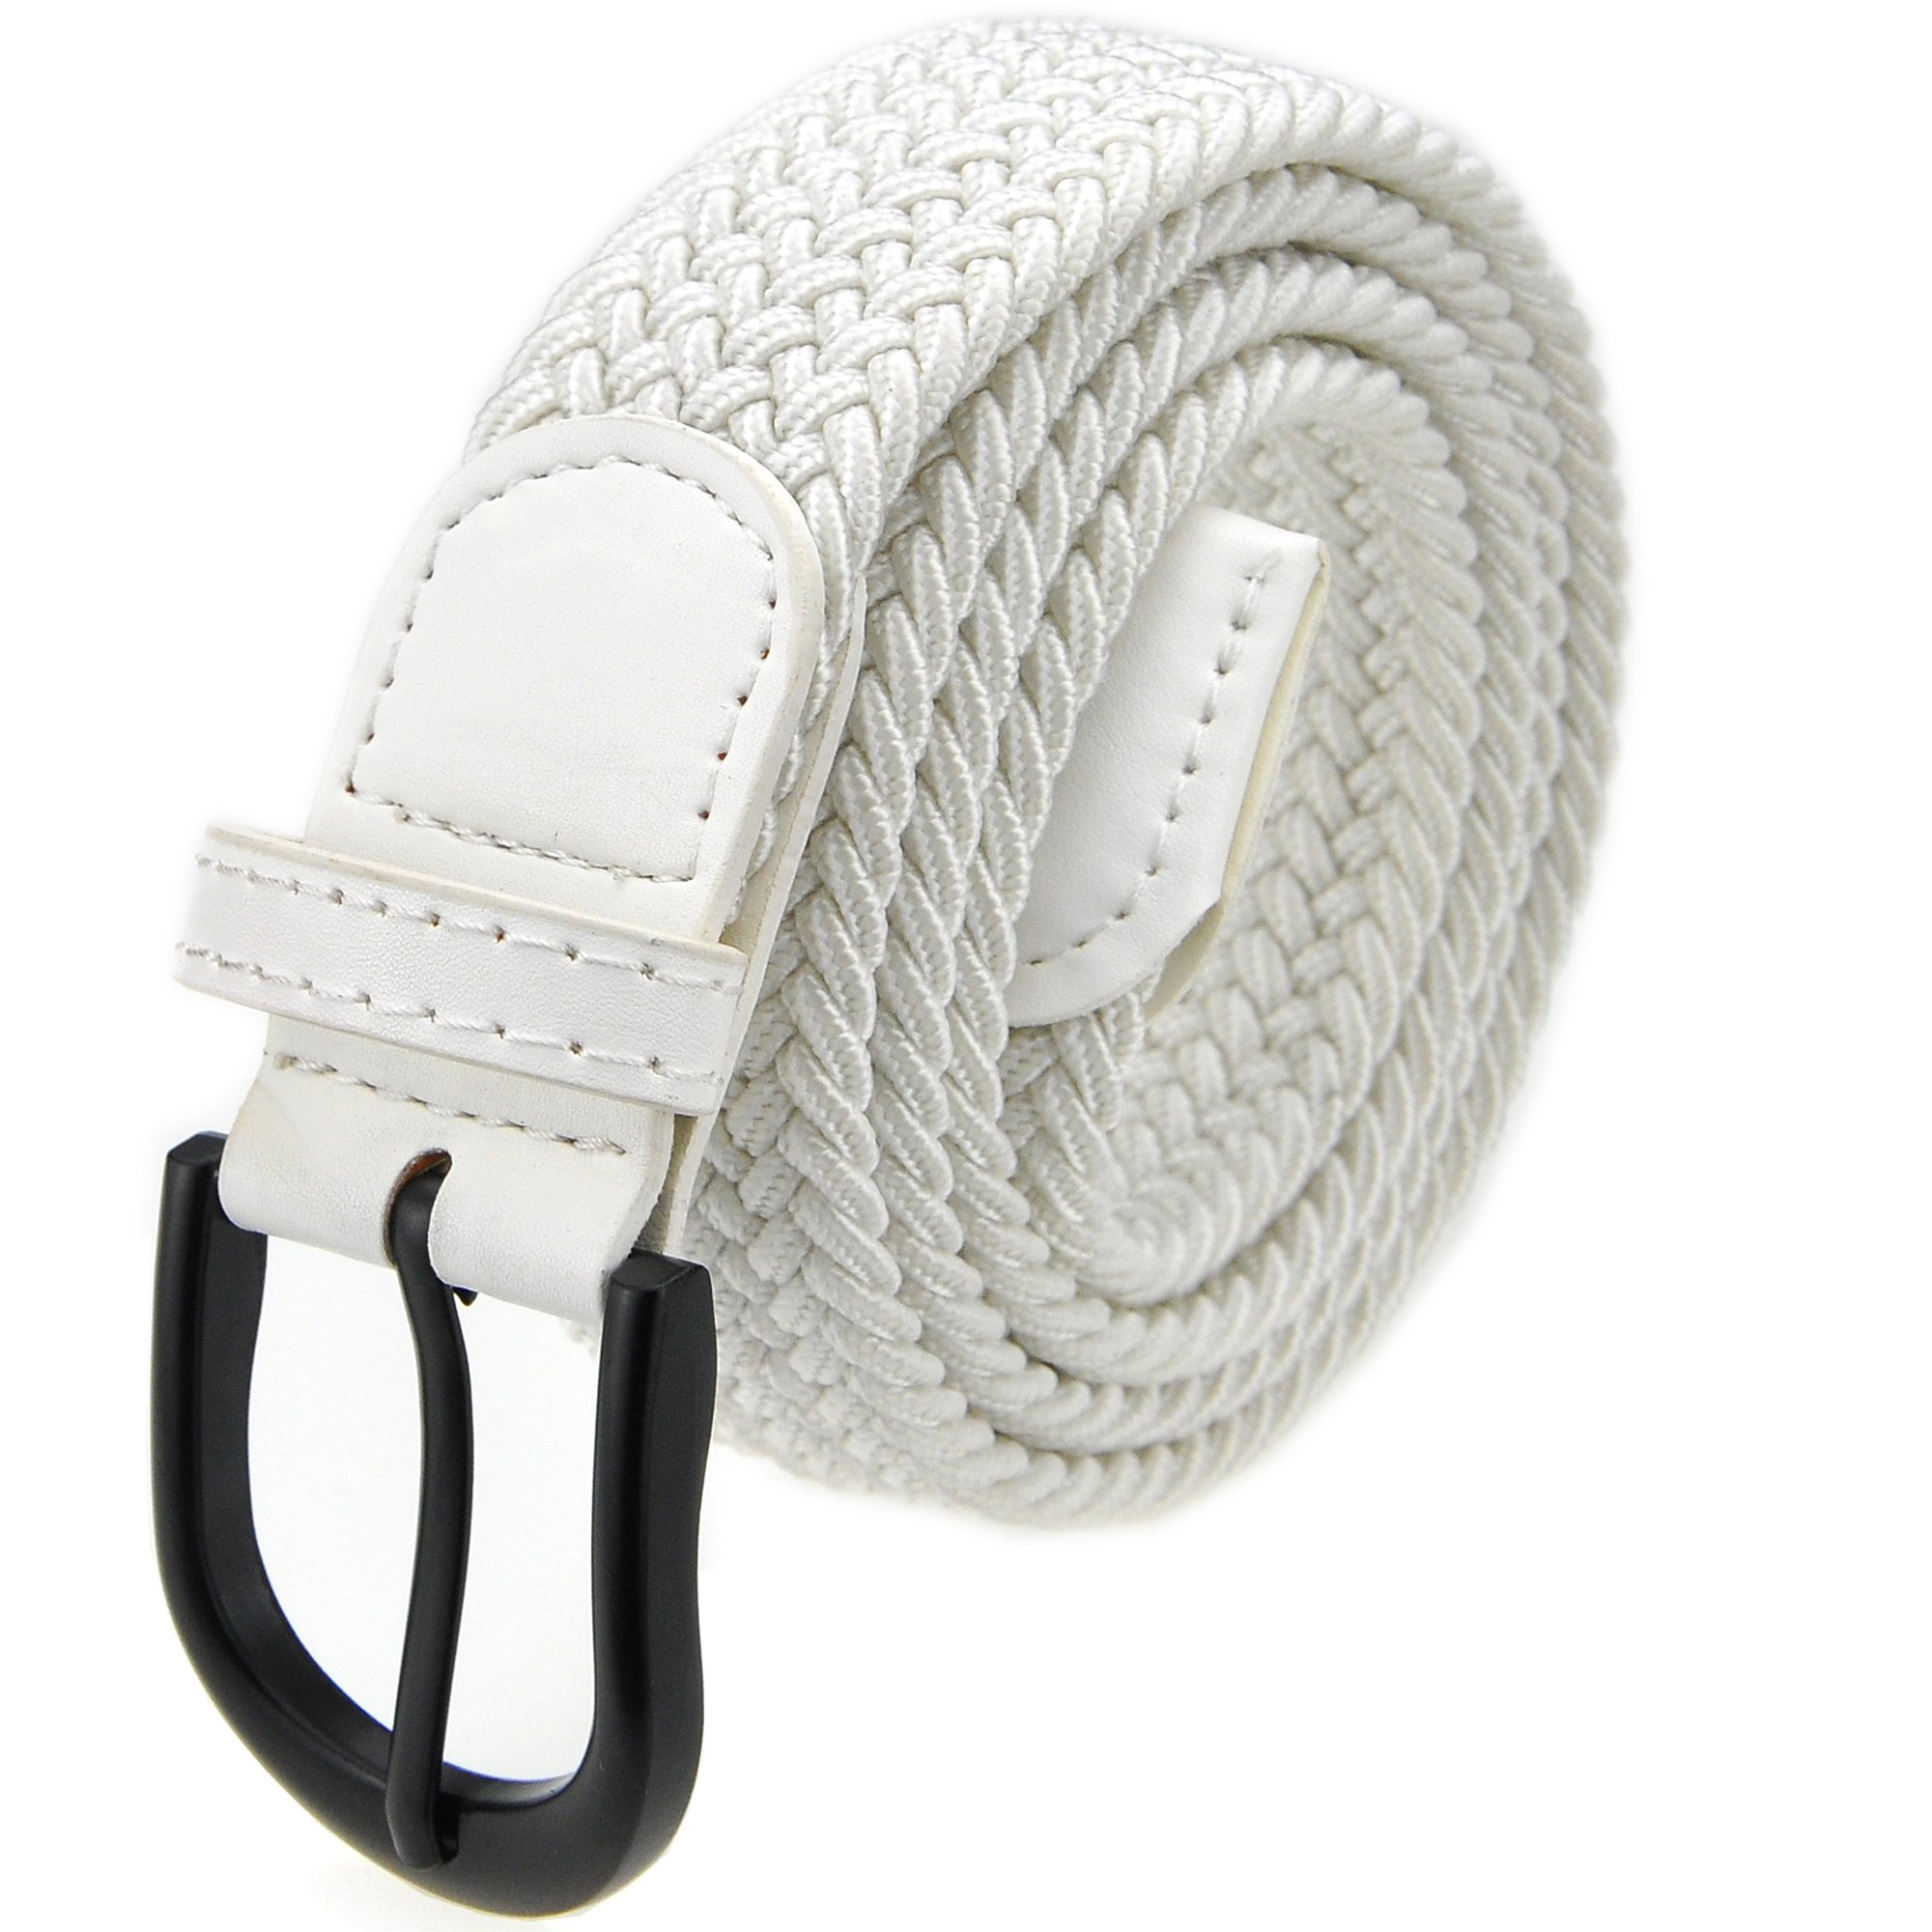 Braided Stretch Elastic Belt with Pin Oval Solid Black Buckle Leather Loop End Tip with Men/Women/Junior (Ivory White, XX-Large 44''-46'' (52'' Length))